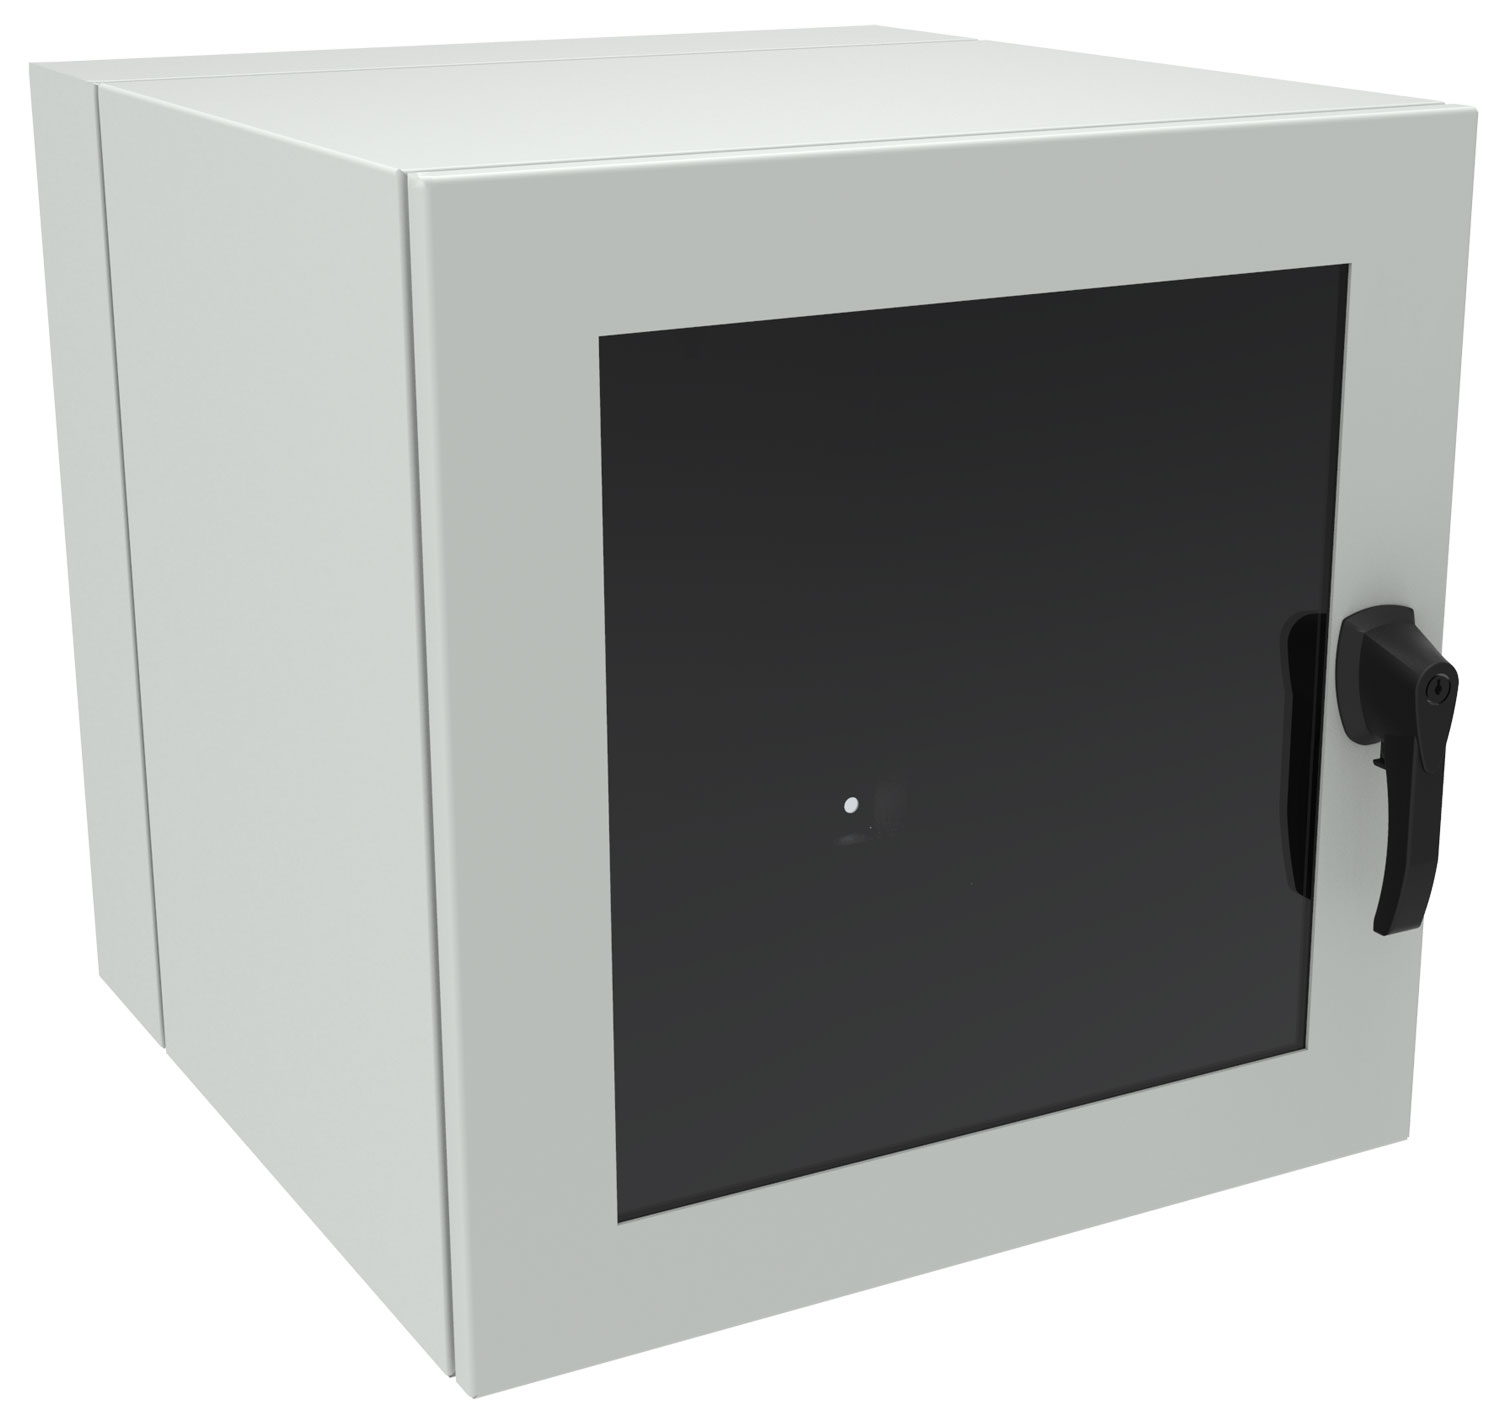 EN4DH242424LG - EN4DH Series NEMA Rated Swing-Out Wall Mount Cabinet